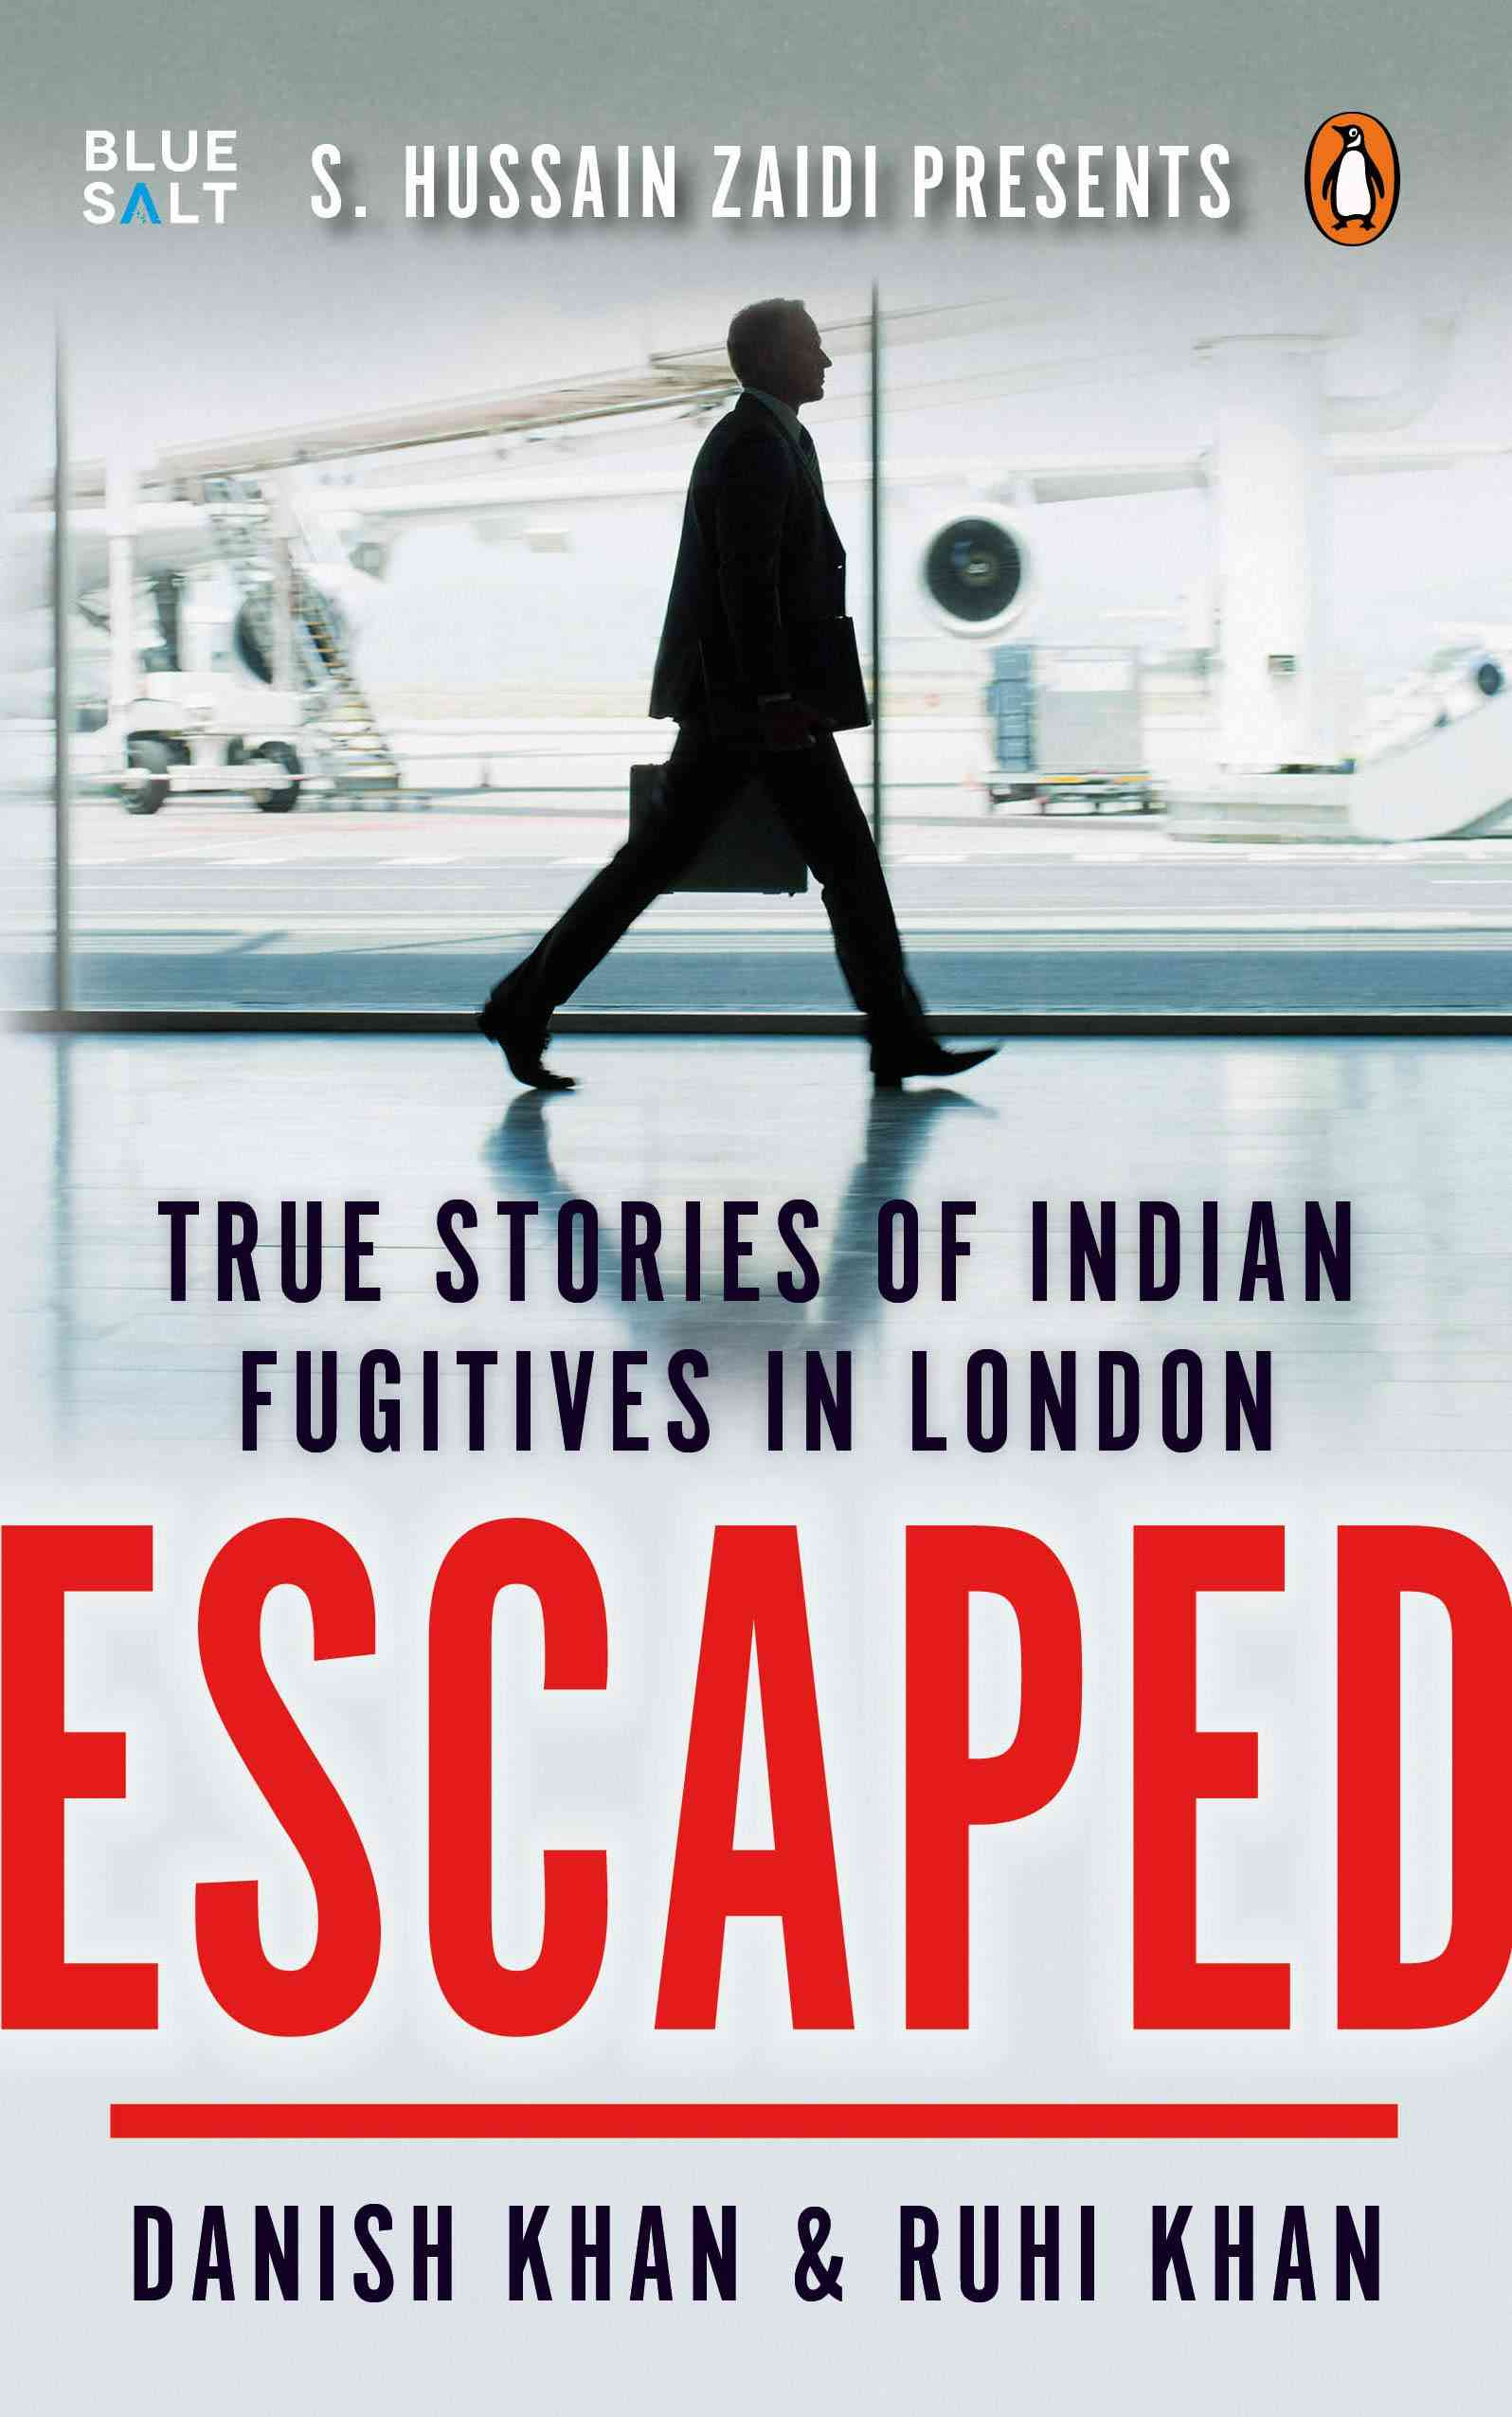 Escaped: True Stories of Indian Fugitives in London